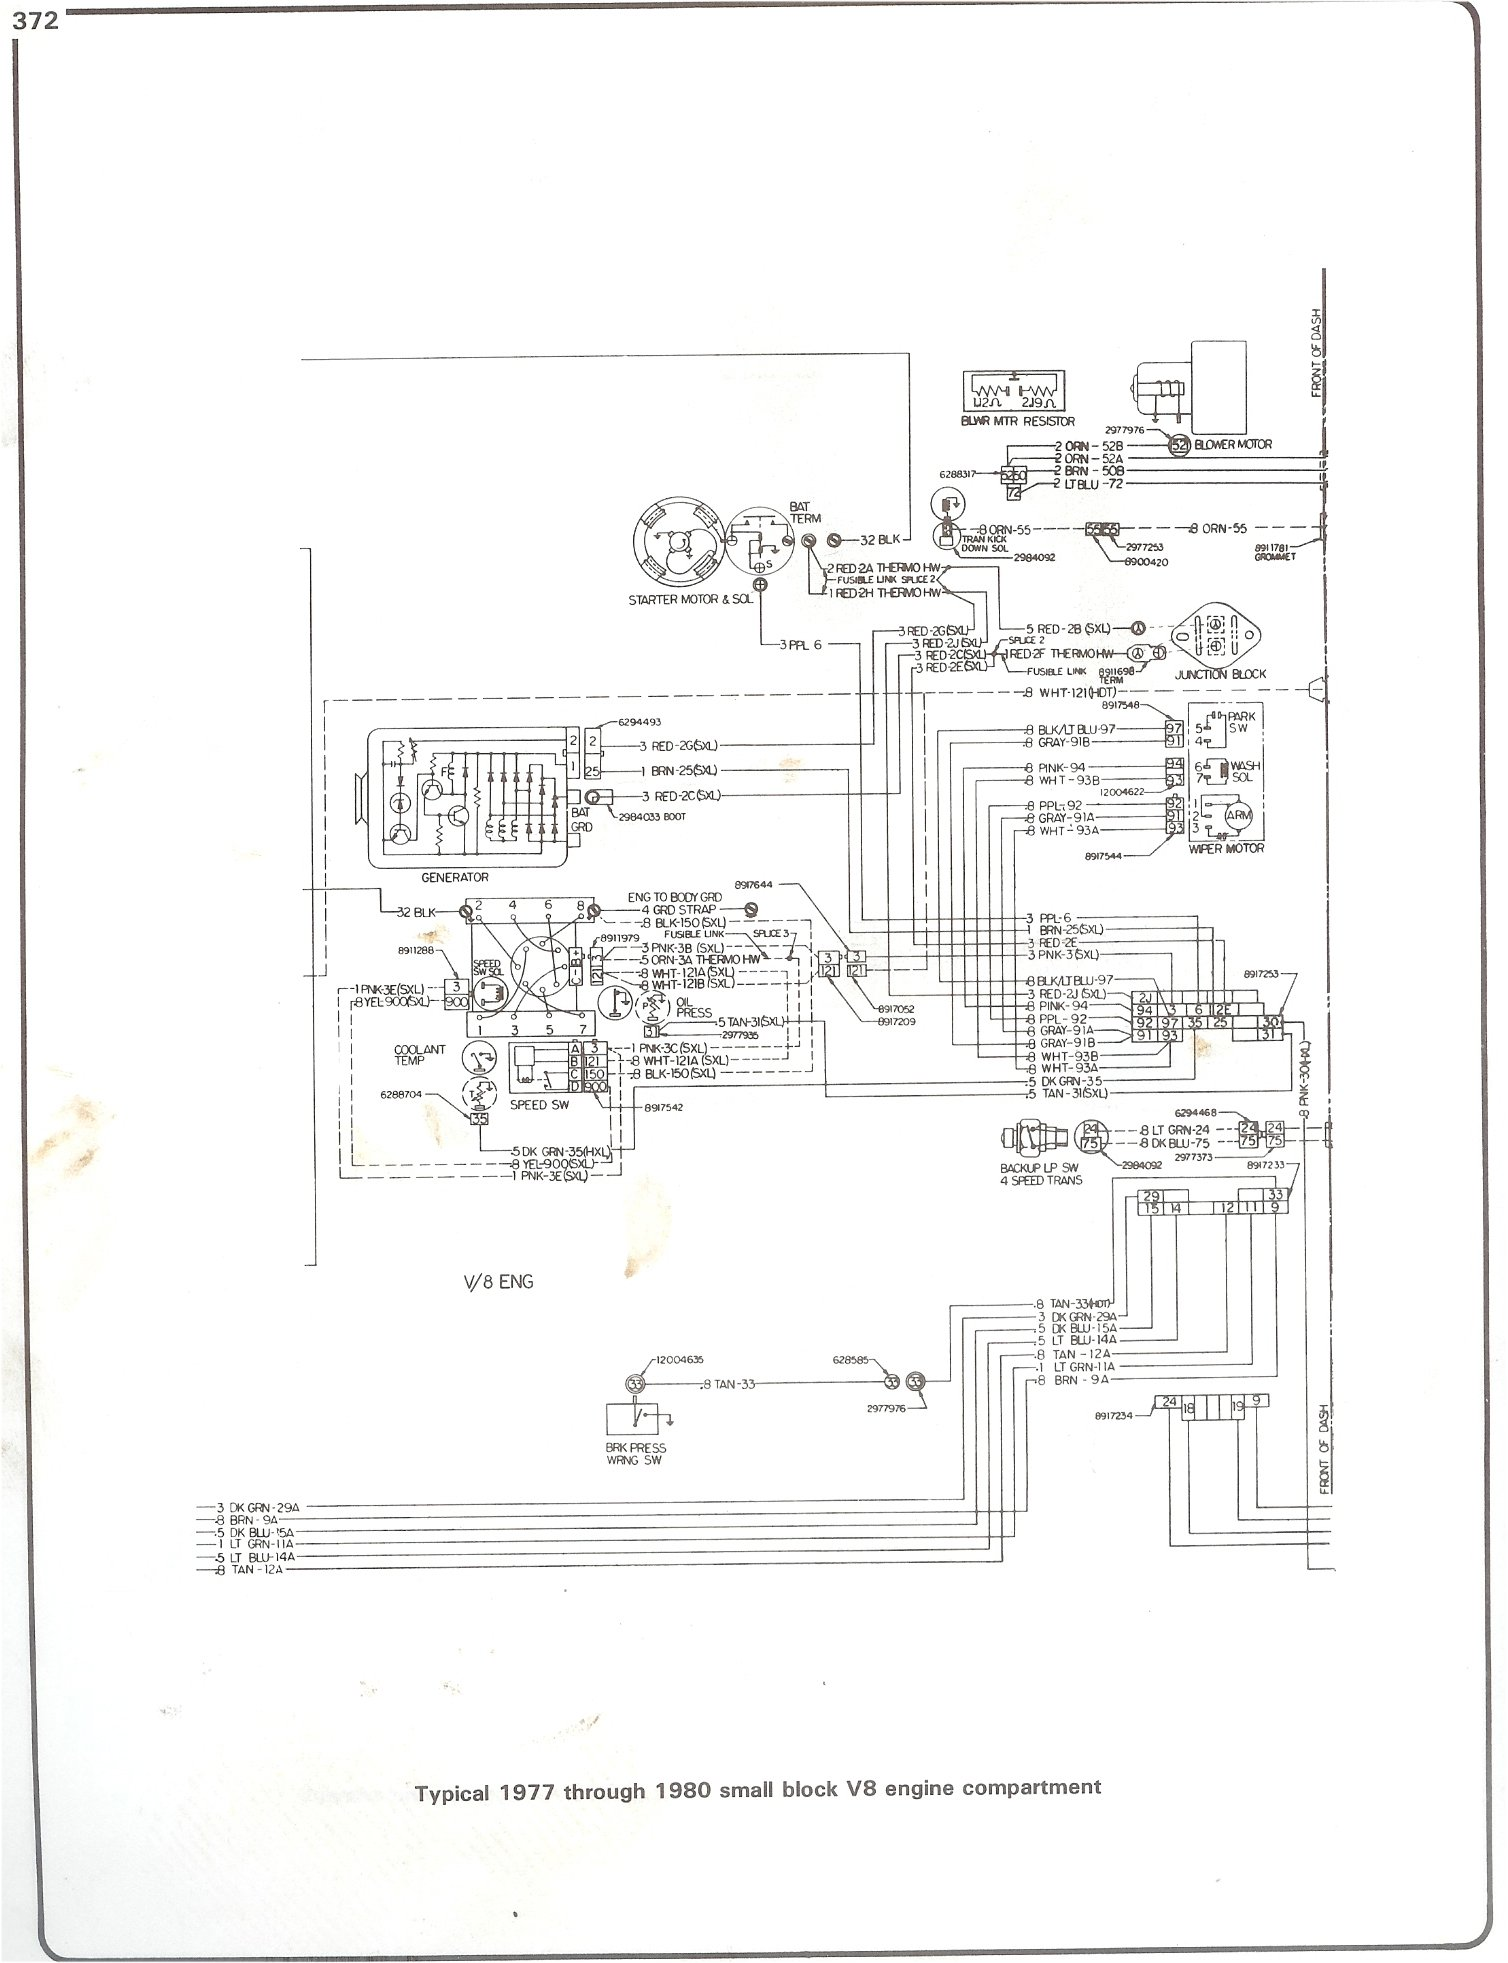 1988 Chevy Caprice Dimmer Switch Diagram Reveolution Of Wiring Complete 73 87 Diagrams Rh Forum 87chevytrucks Com Chevrolet Police Car